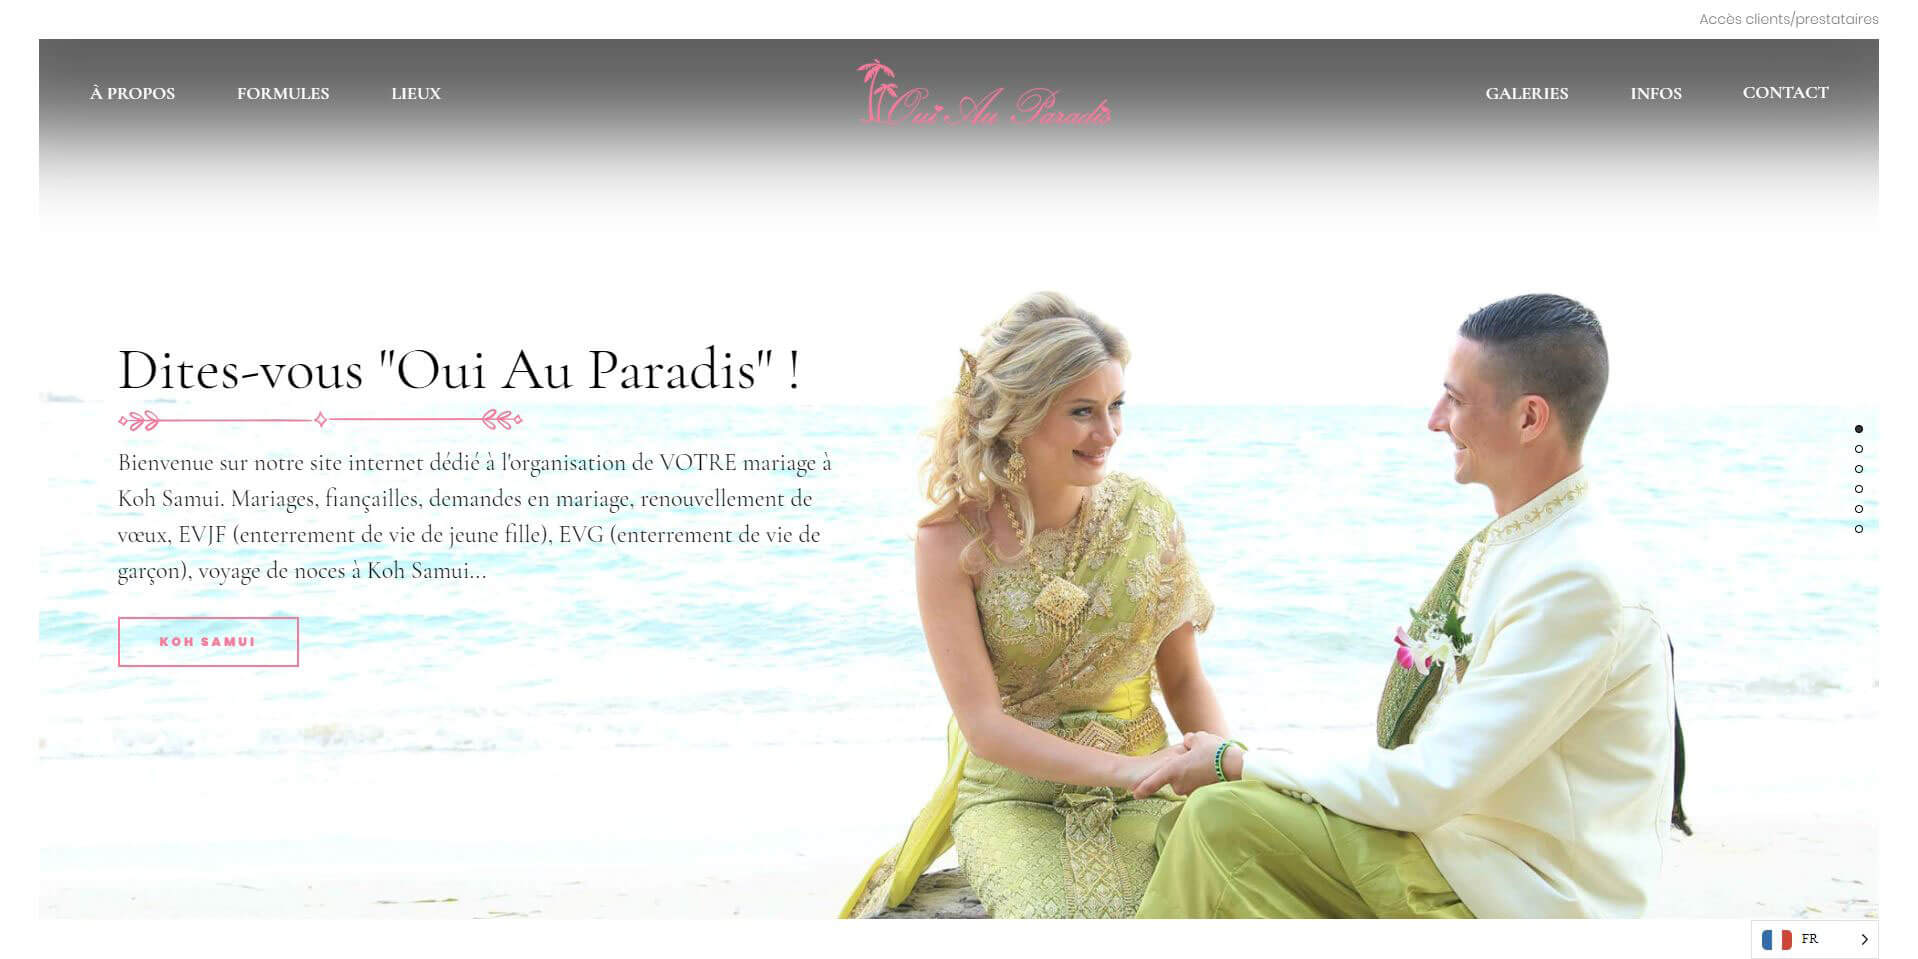 Website - Oui au paradis